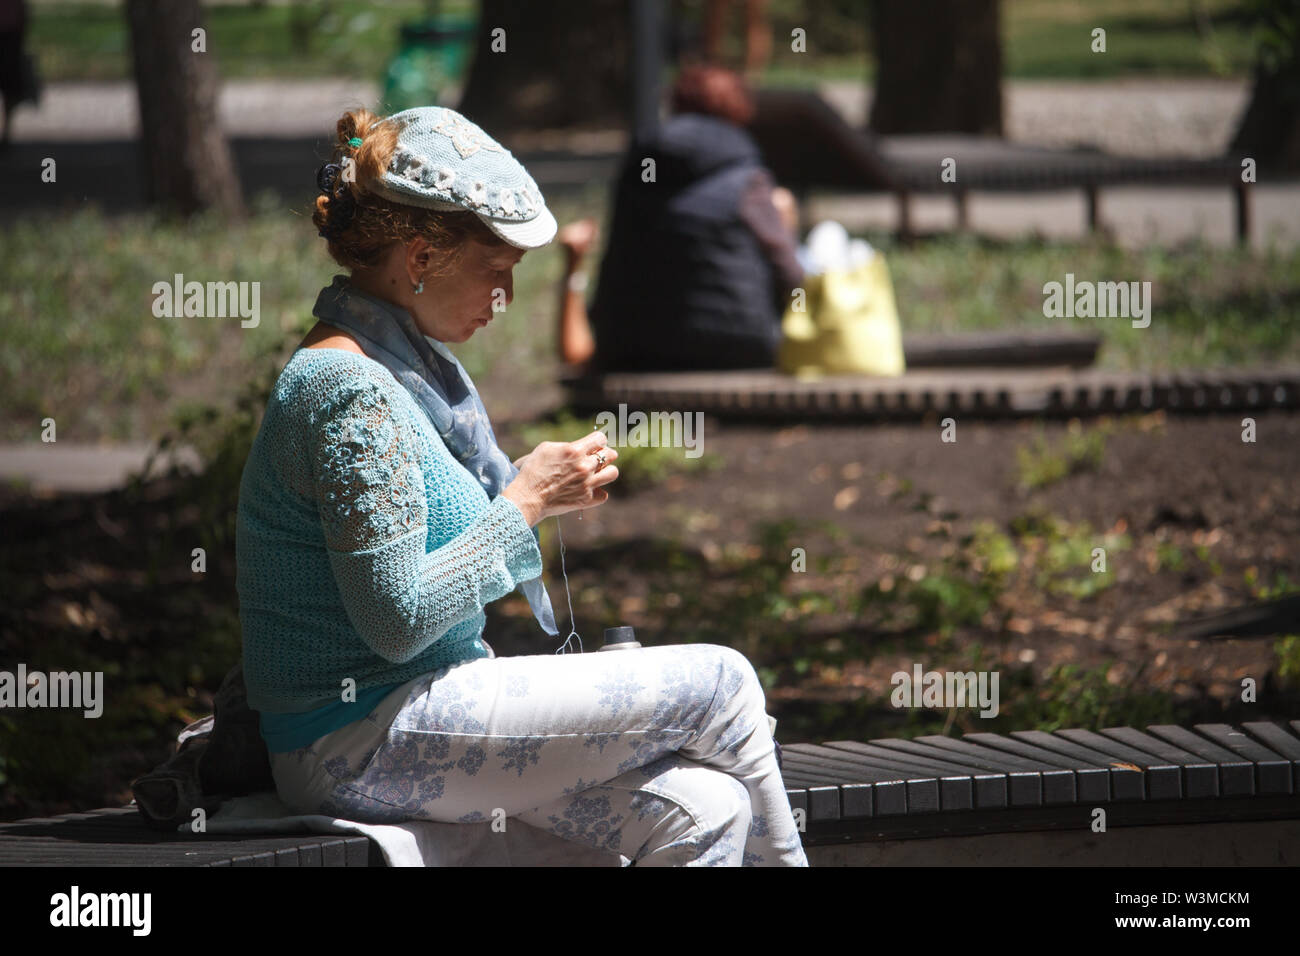 Kharkiv, Ukraine - June 30, 2019: An adult woman in a beautiful handmade sweater and cap sits on a bench in a city park and crochets a new product. - Stock Image